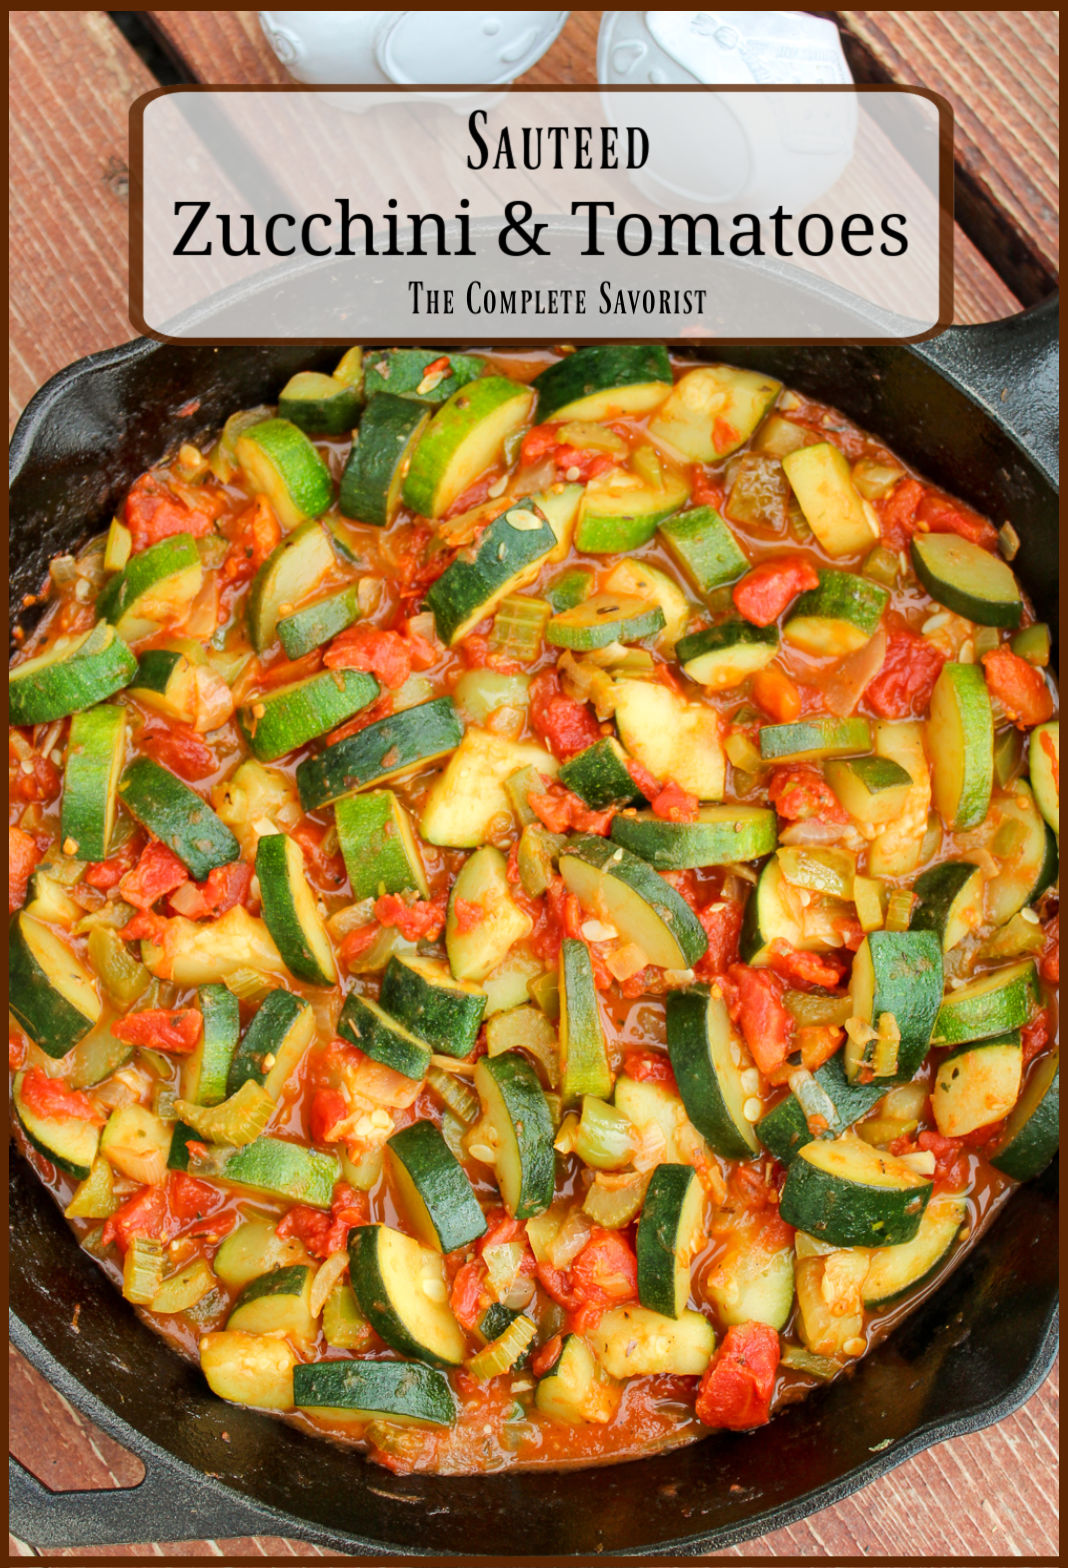 Cast iron skillet with Italian style zucchini, tomatoes, onions, and celery.